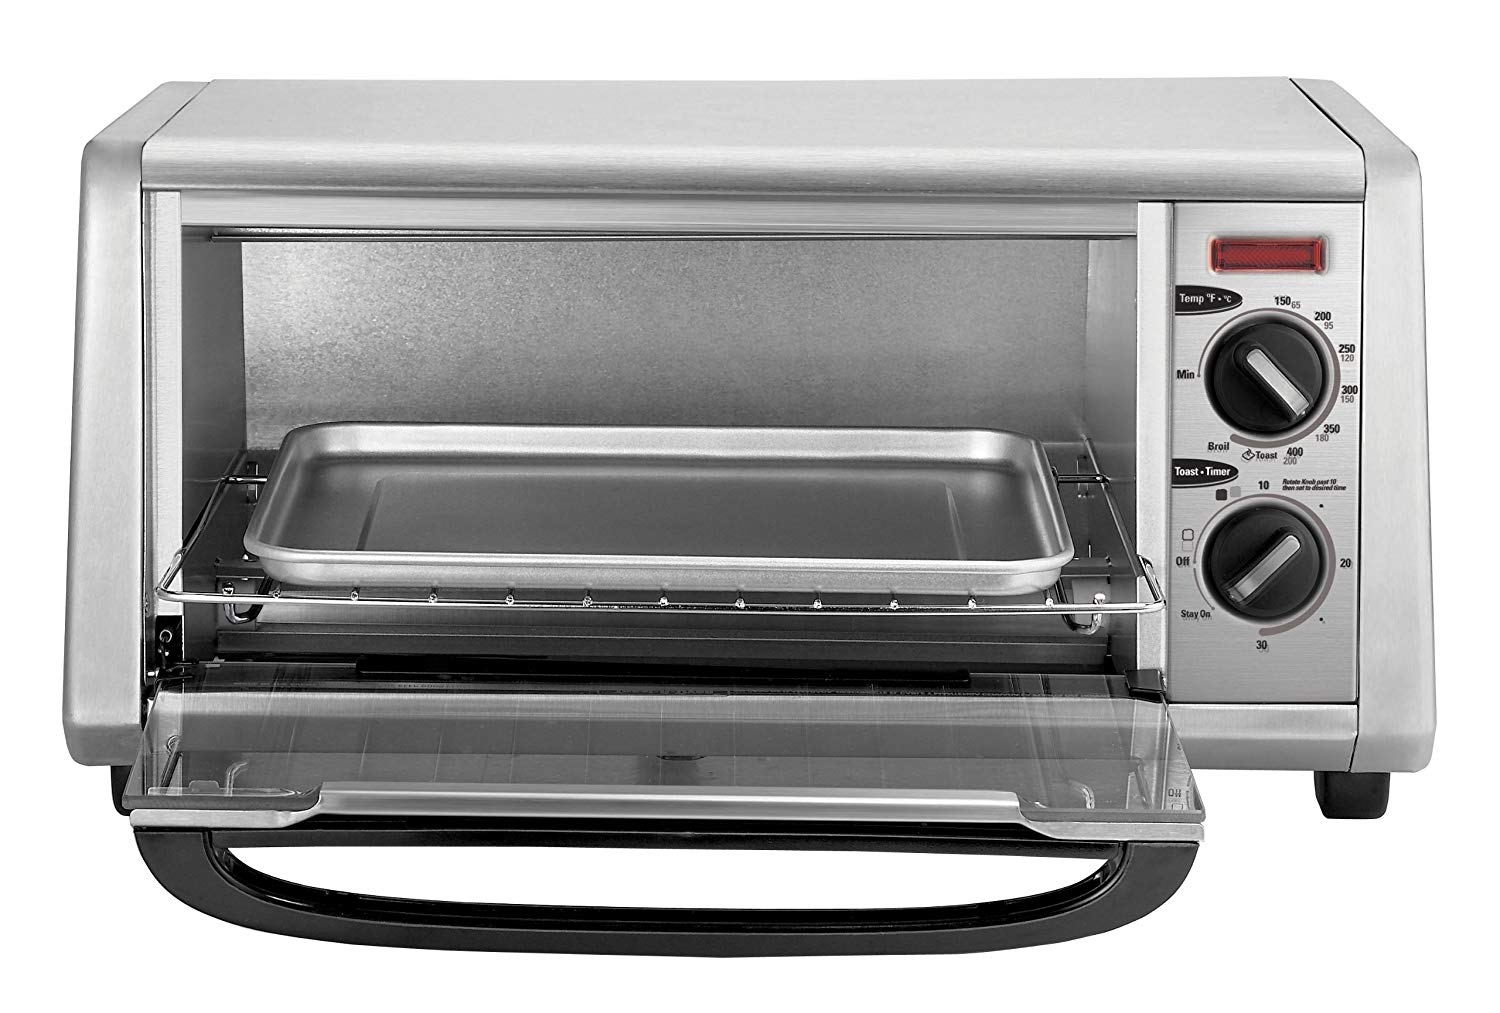 banner black and white library Black decker to s. Toaster oven clipart.